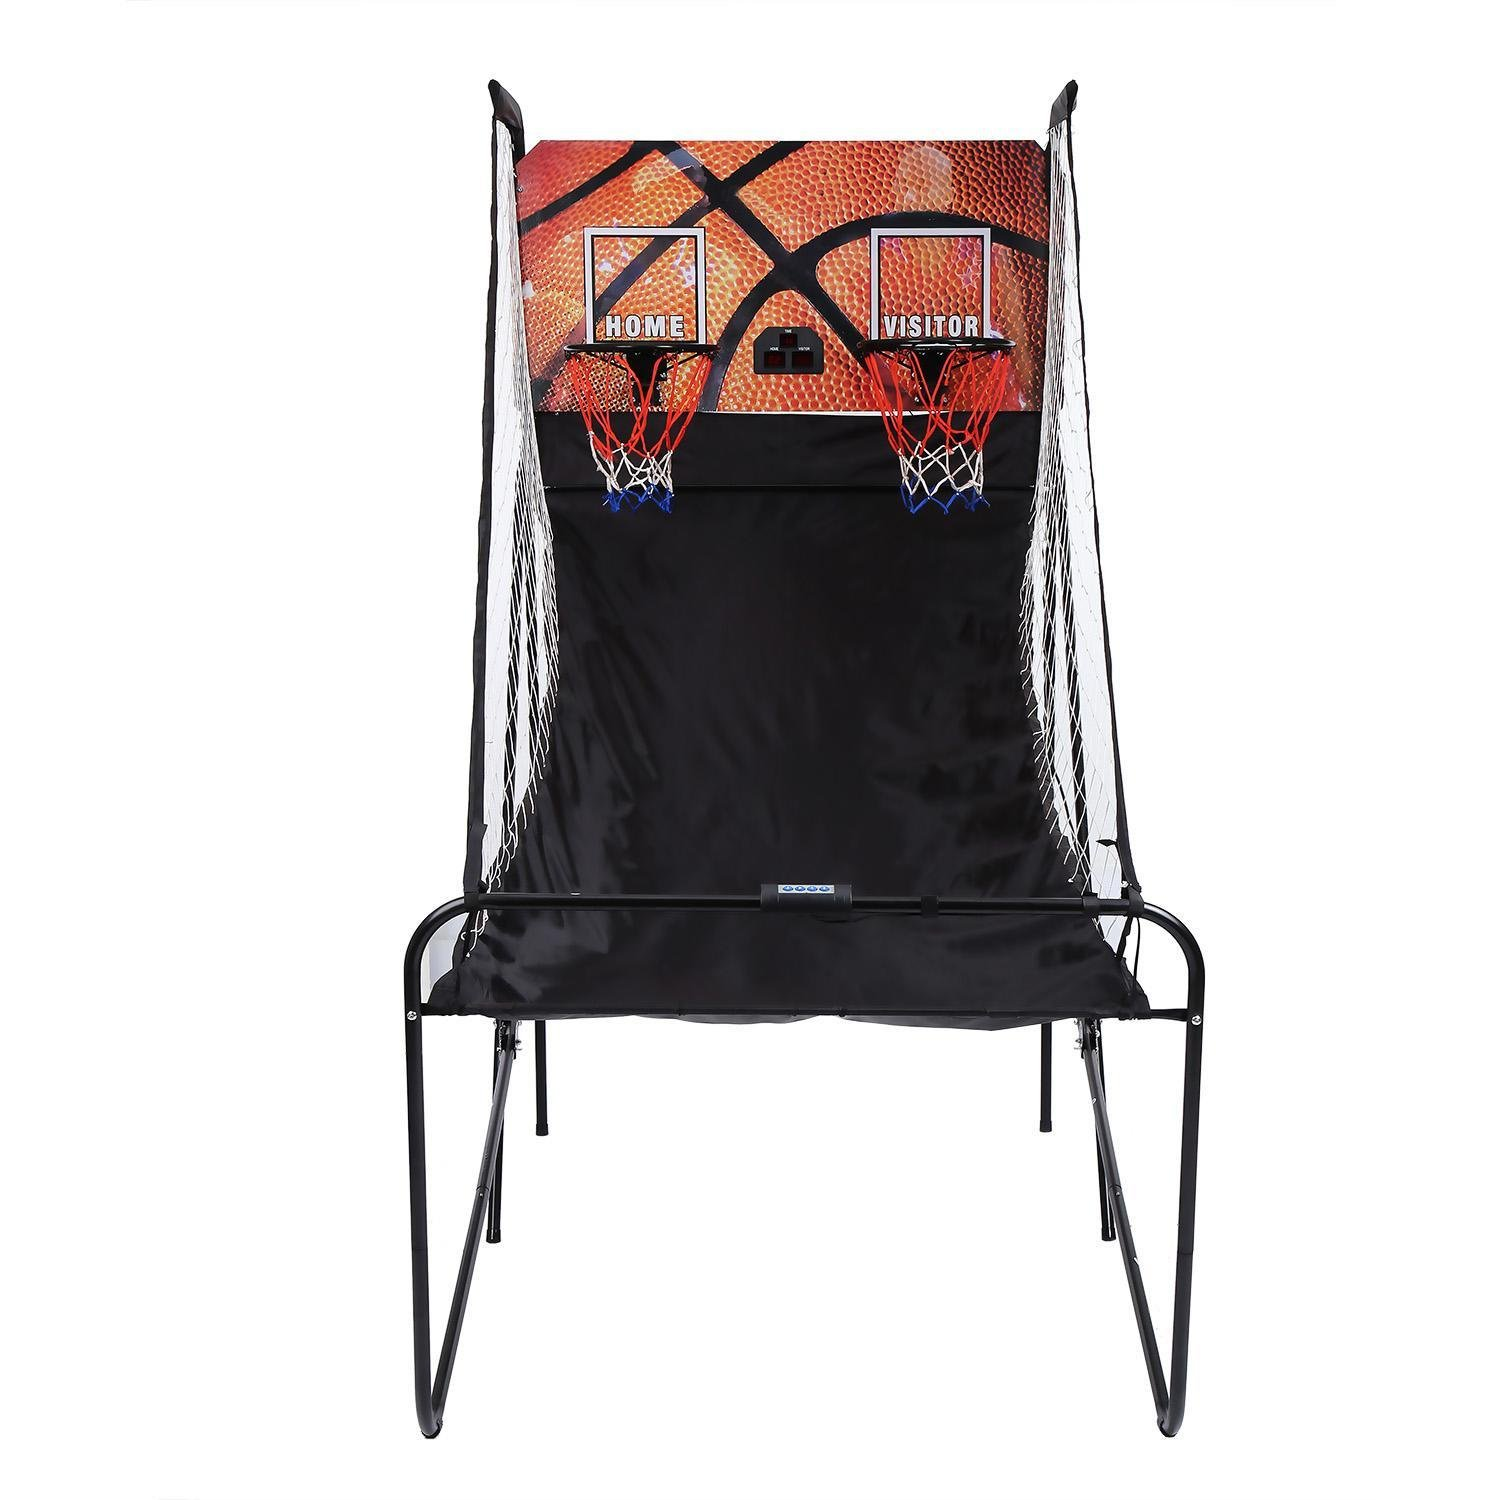 Basketball Arcade Game,Pagacat Electronic Folding 2-Player Arcade Basketball Machine for Outdoor Indoor[US Stock]